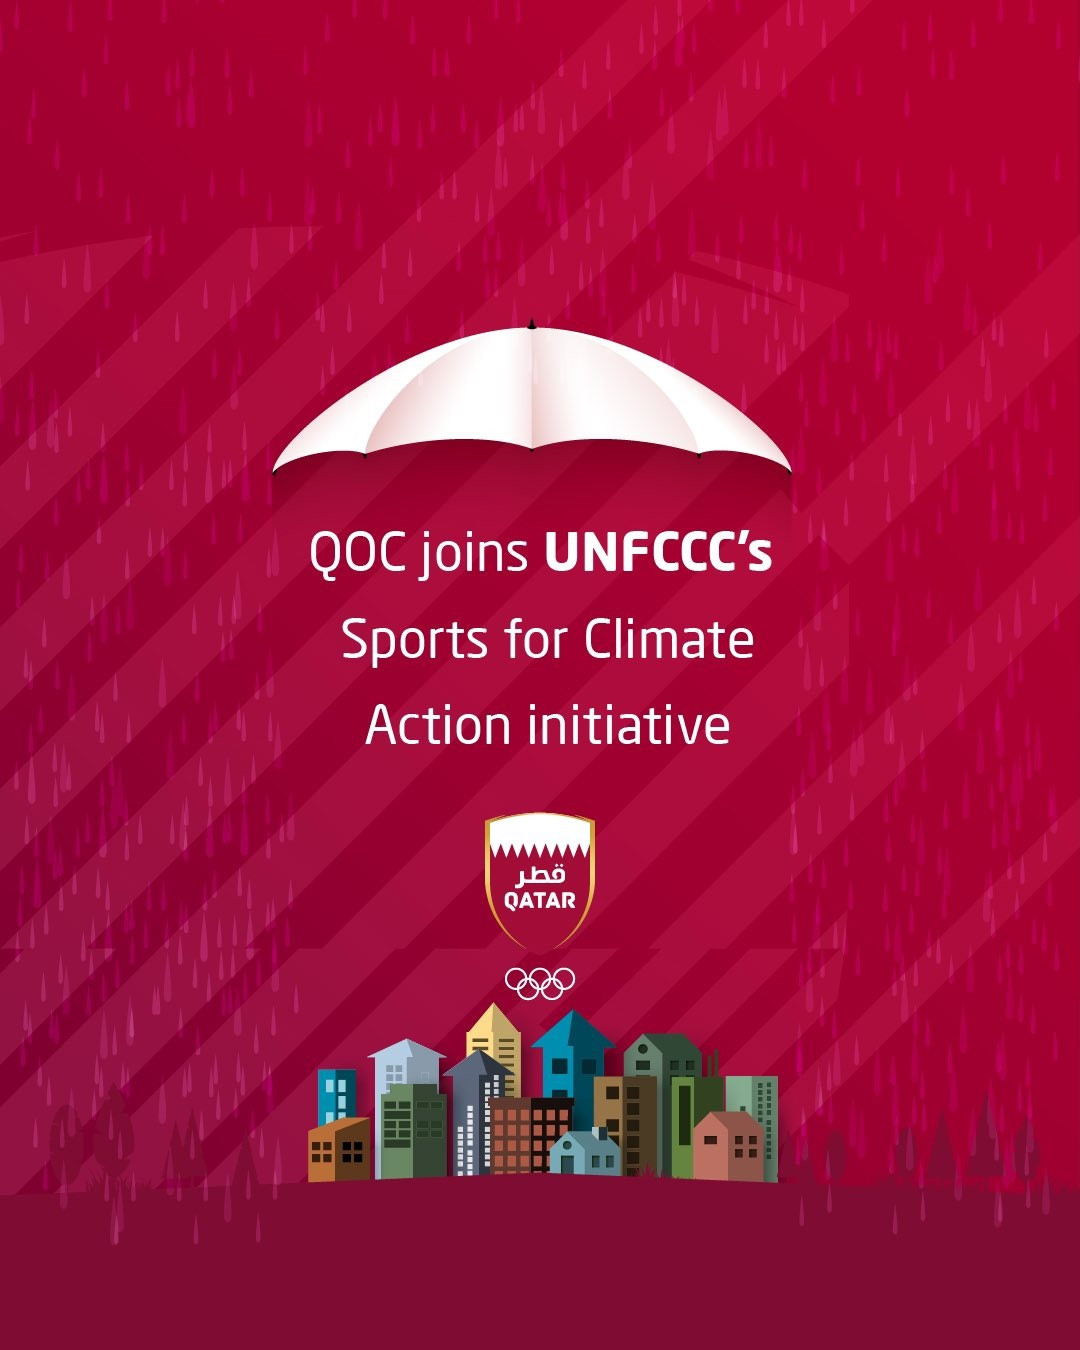 The Qatar Olympic Committee has joined the United Nations Framework Convention on Climate Change's Sports for Climate Action initiative ©QOC